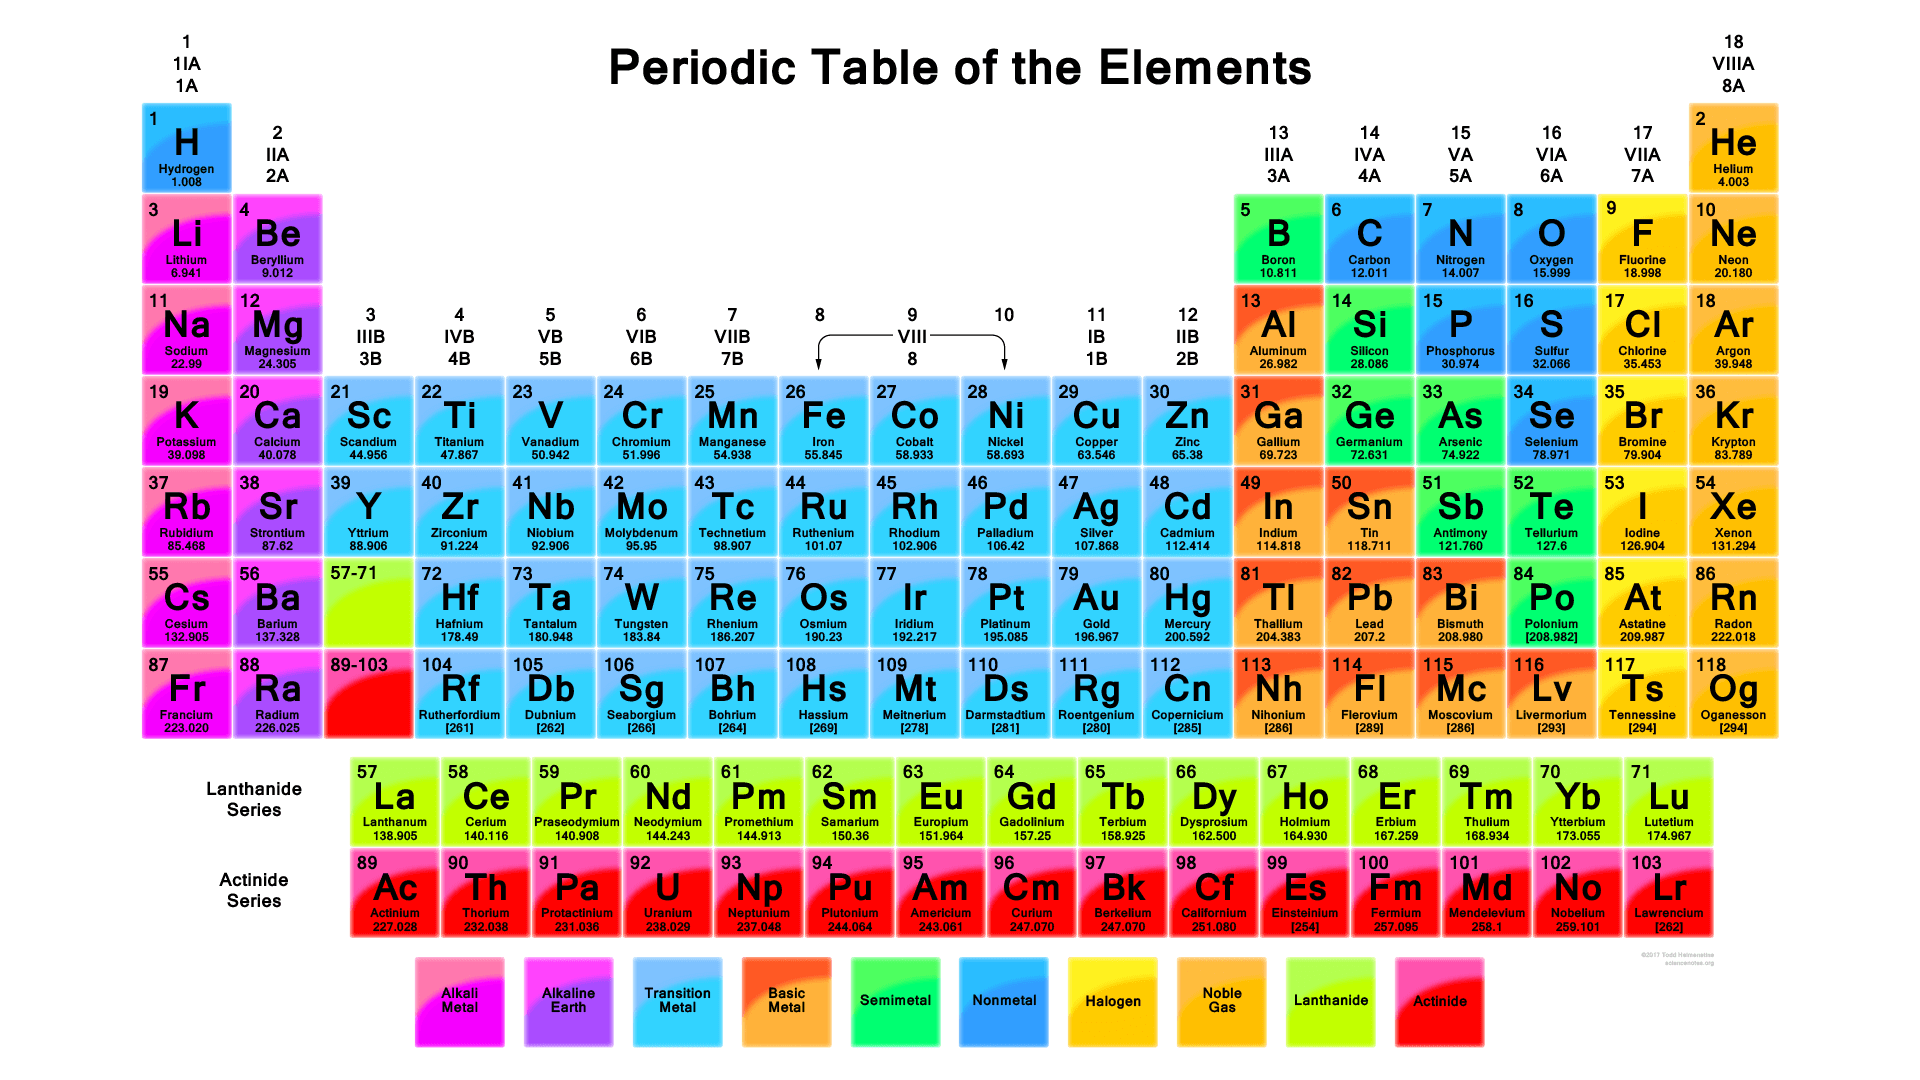 Periodic table pdf 2018 edition with 118 elements table on whitetable on black urtaz Choice Image